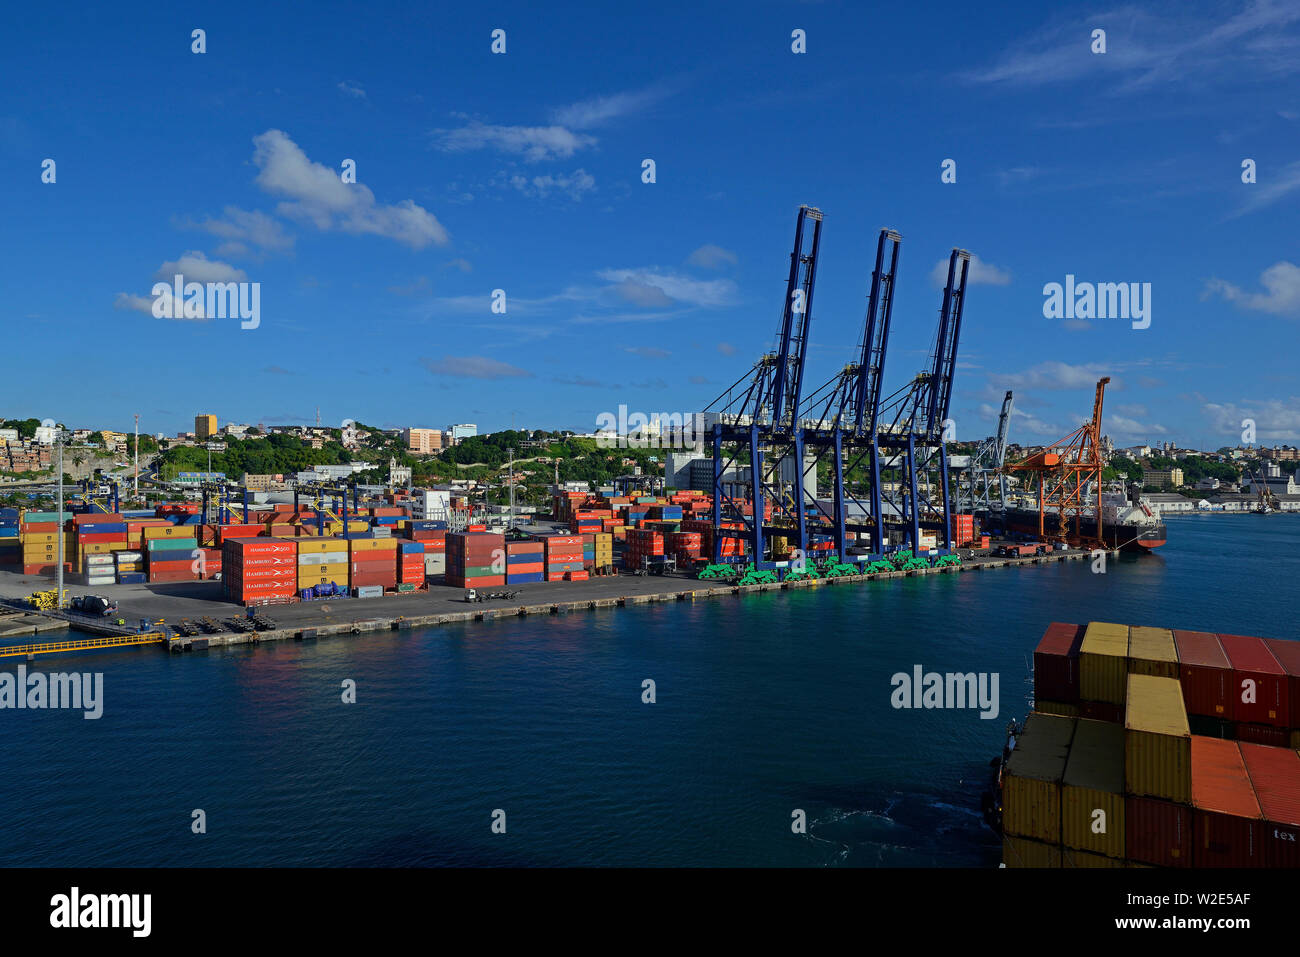 slvador bahia, brazil - february 15, 2014:  panoramic view onto  salvador bahia  tecon wilson sons container terminal from an arriving containership Stock Photo